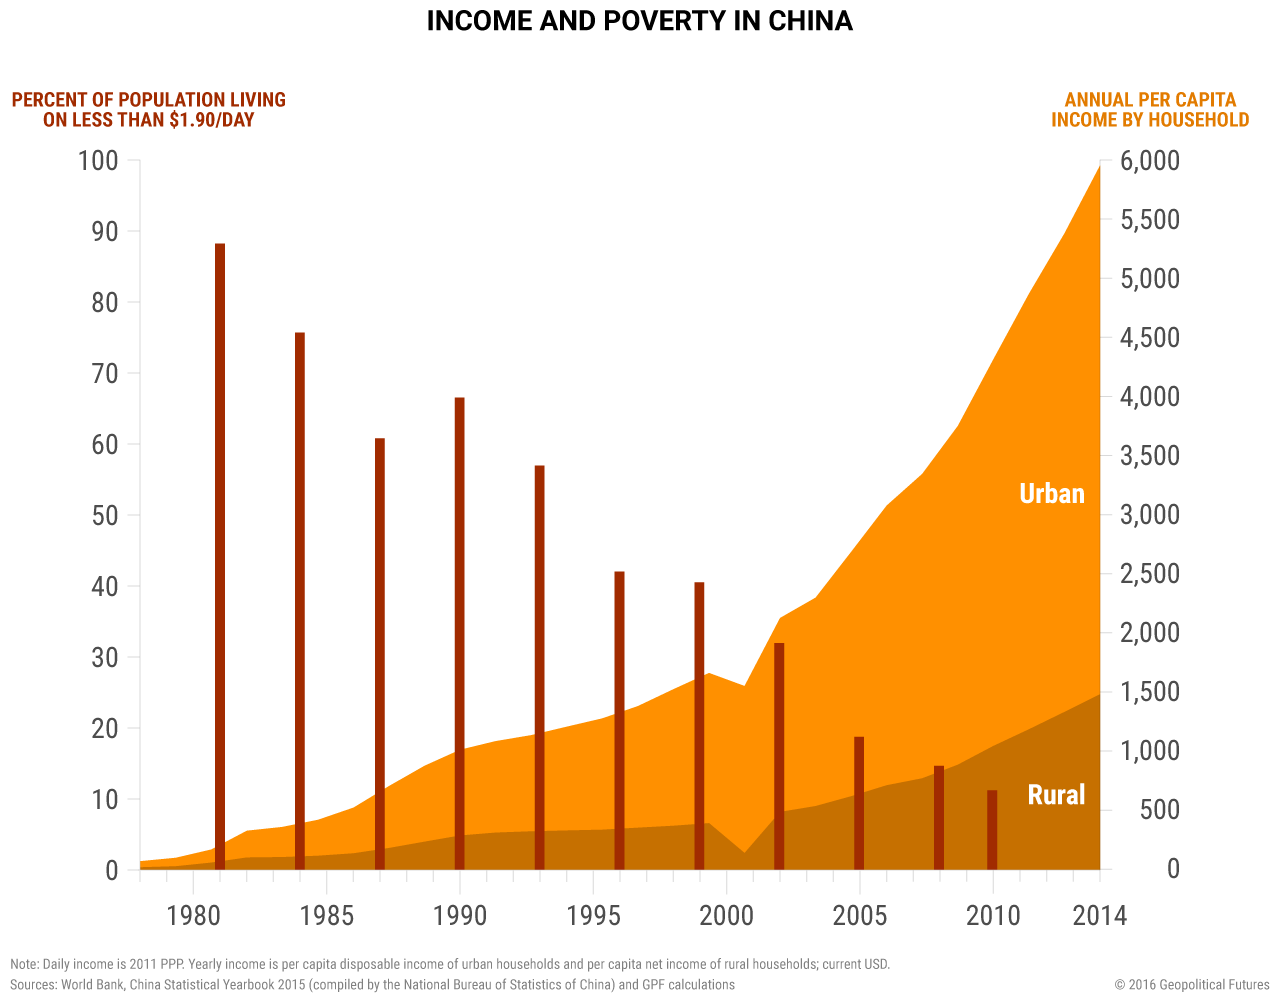 Income and Poverty in China